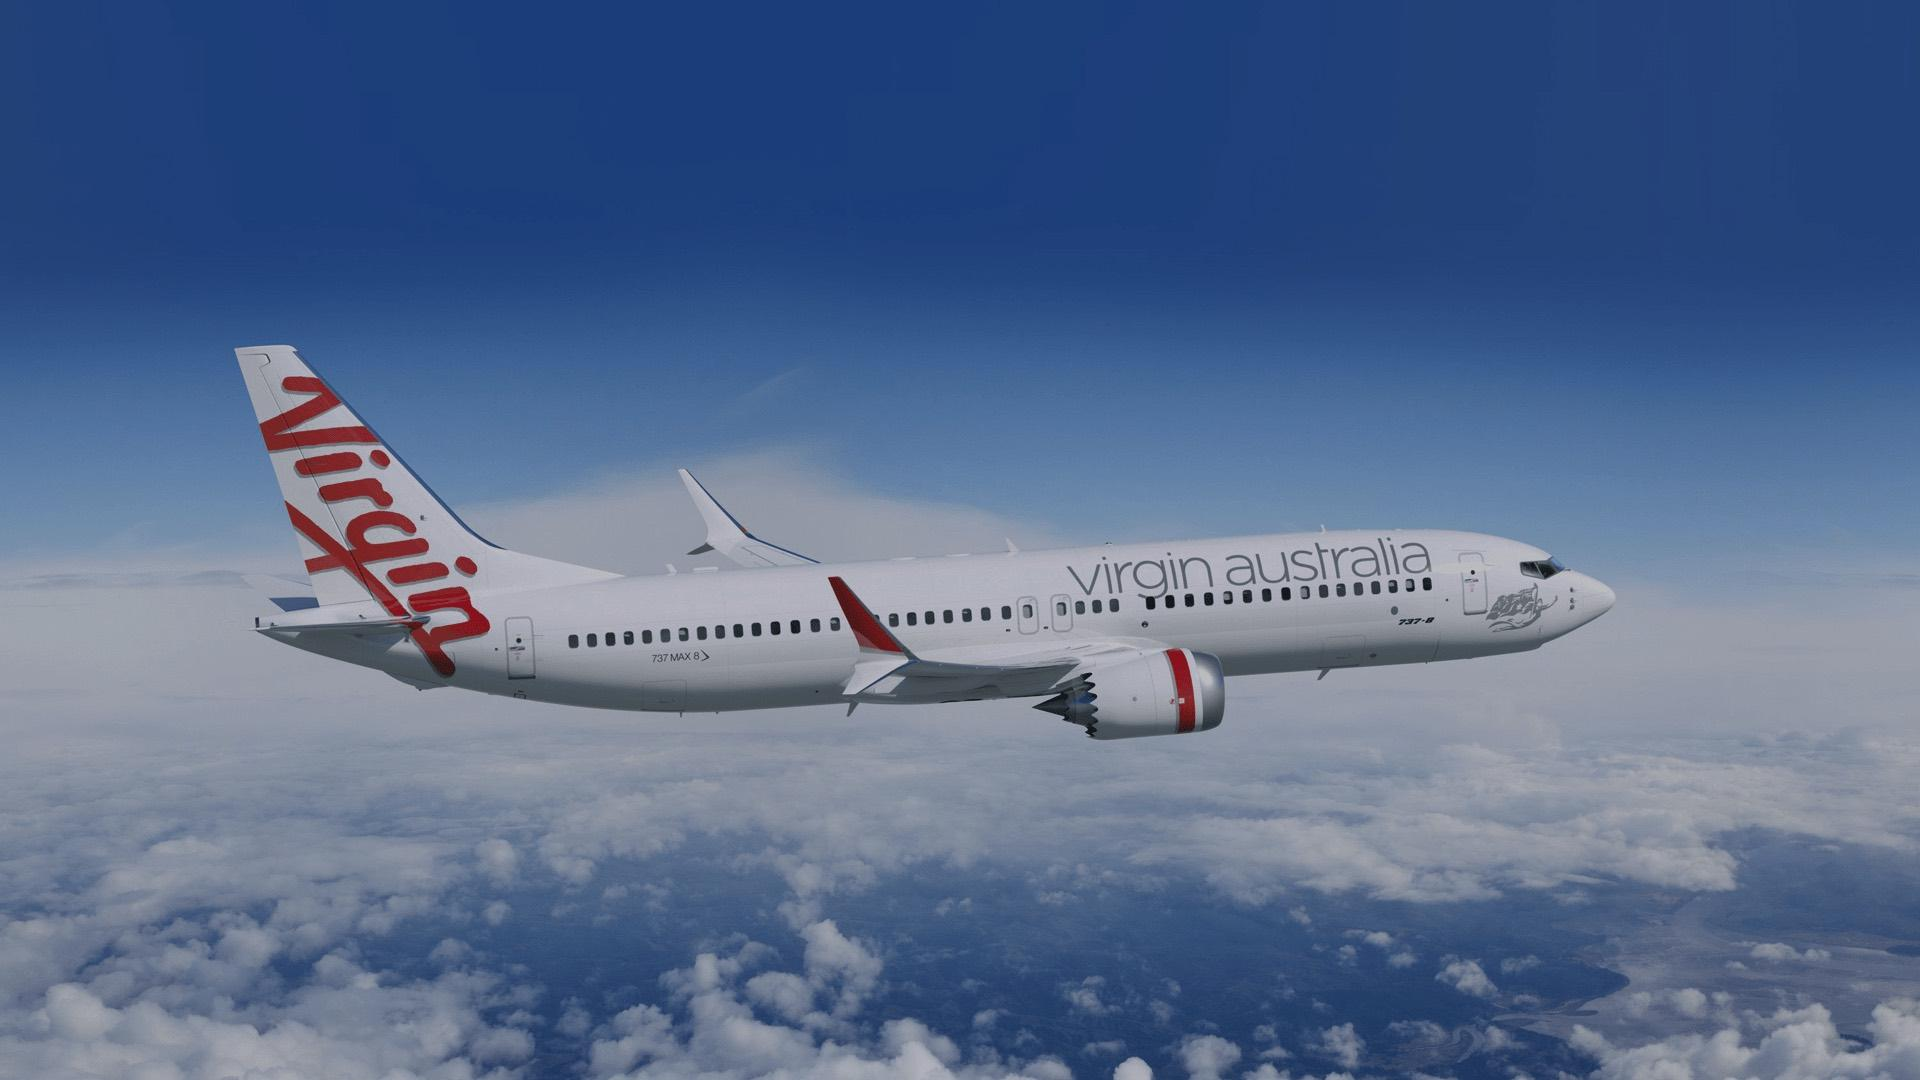 Virgin Australia Travel Portal | Doghouse Agency